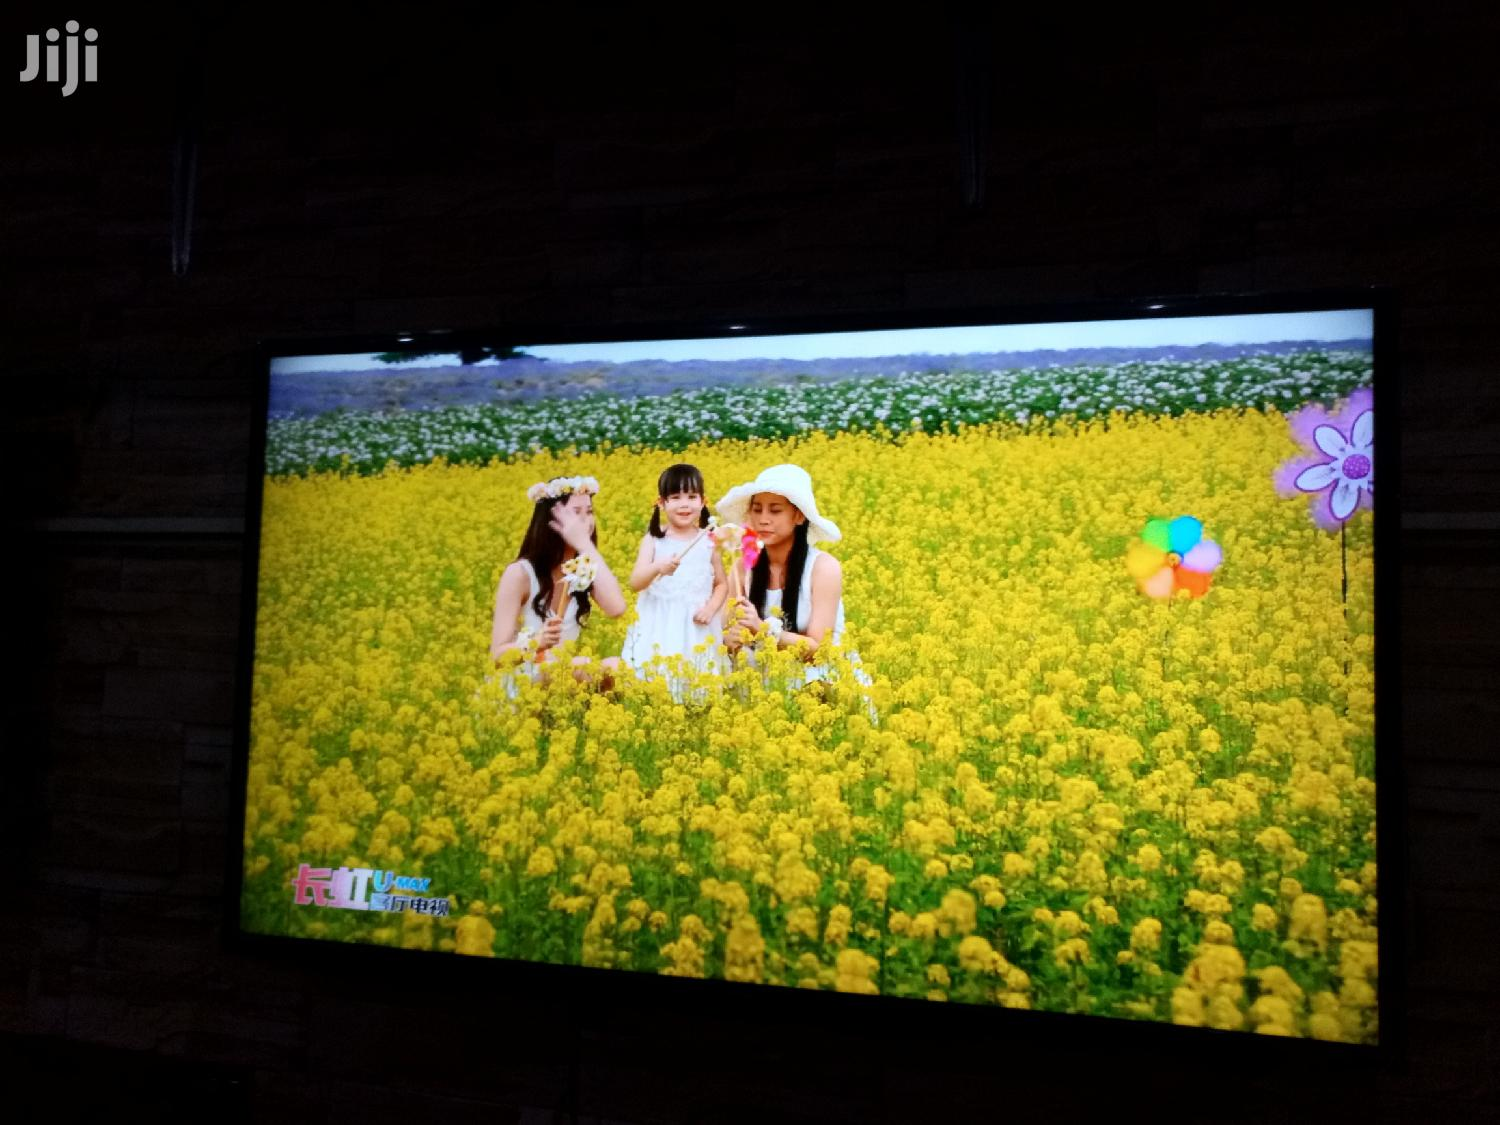 Samsung Smart Digital Flat Screen Tv 49 Inches | TV & DVD Equipment for sale in Kampala, Central Region, Uganda